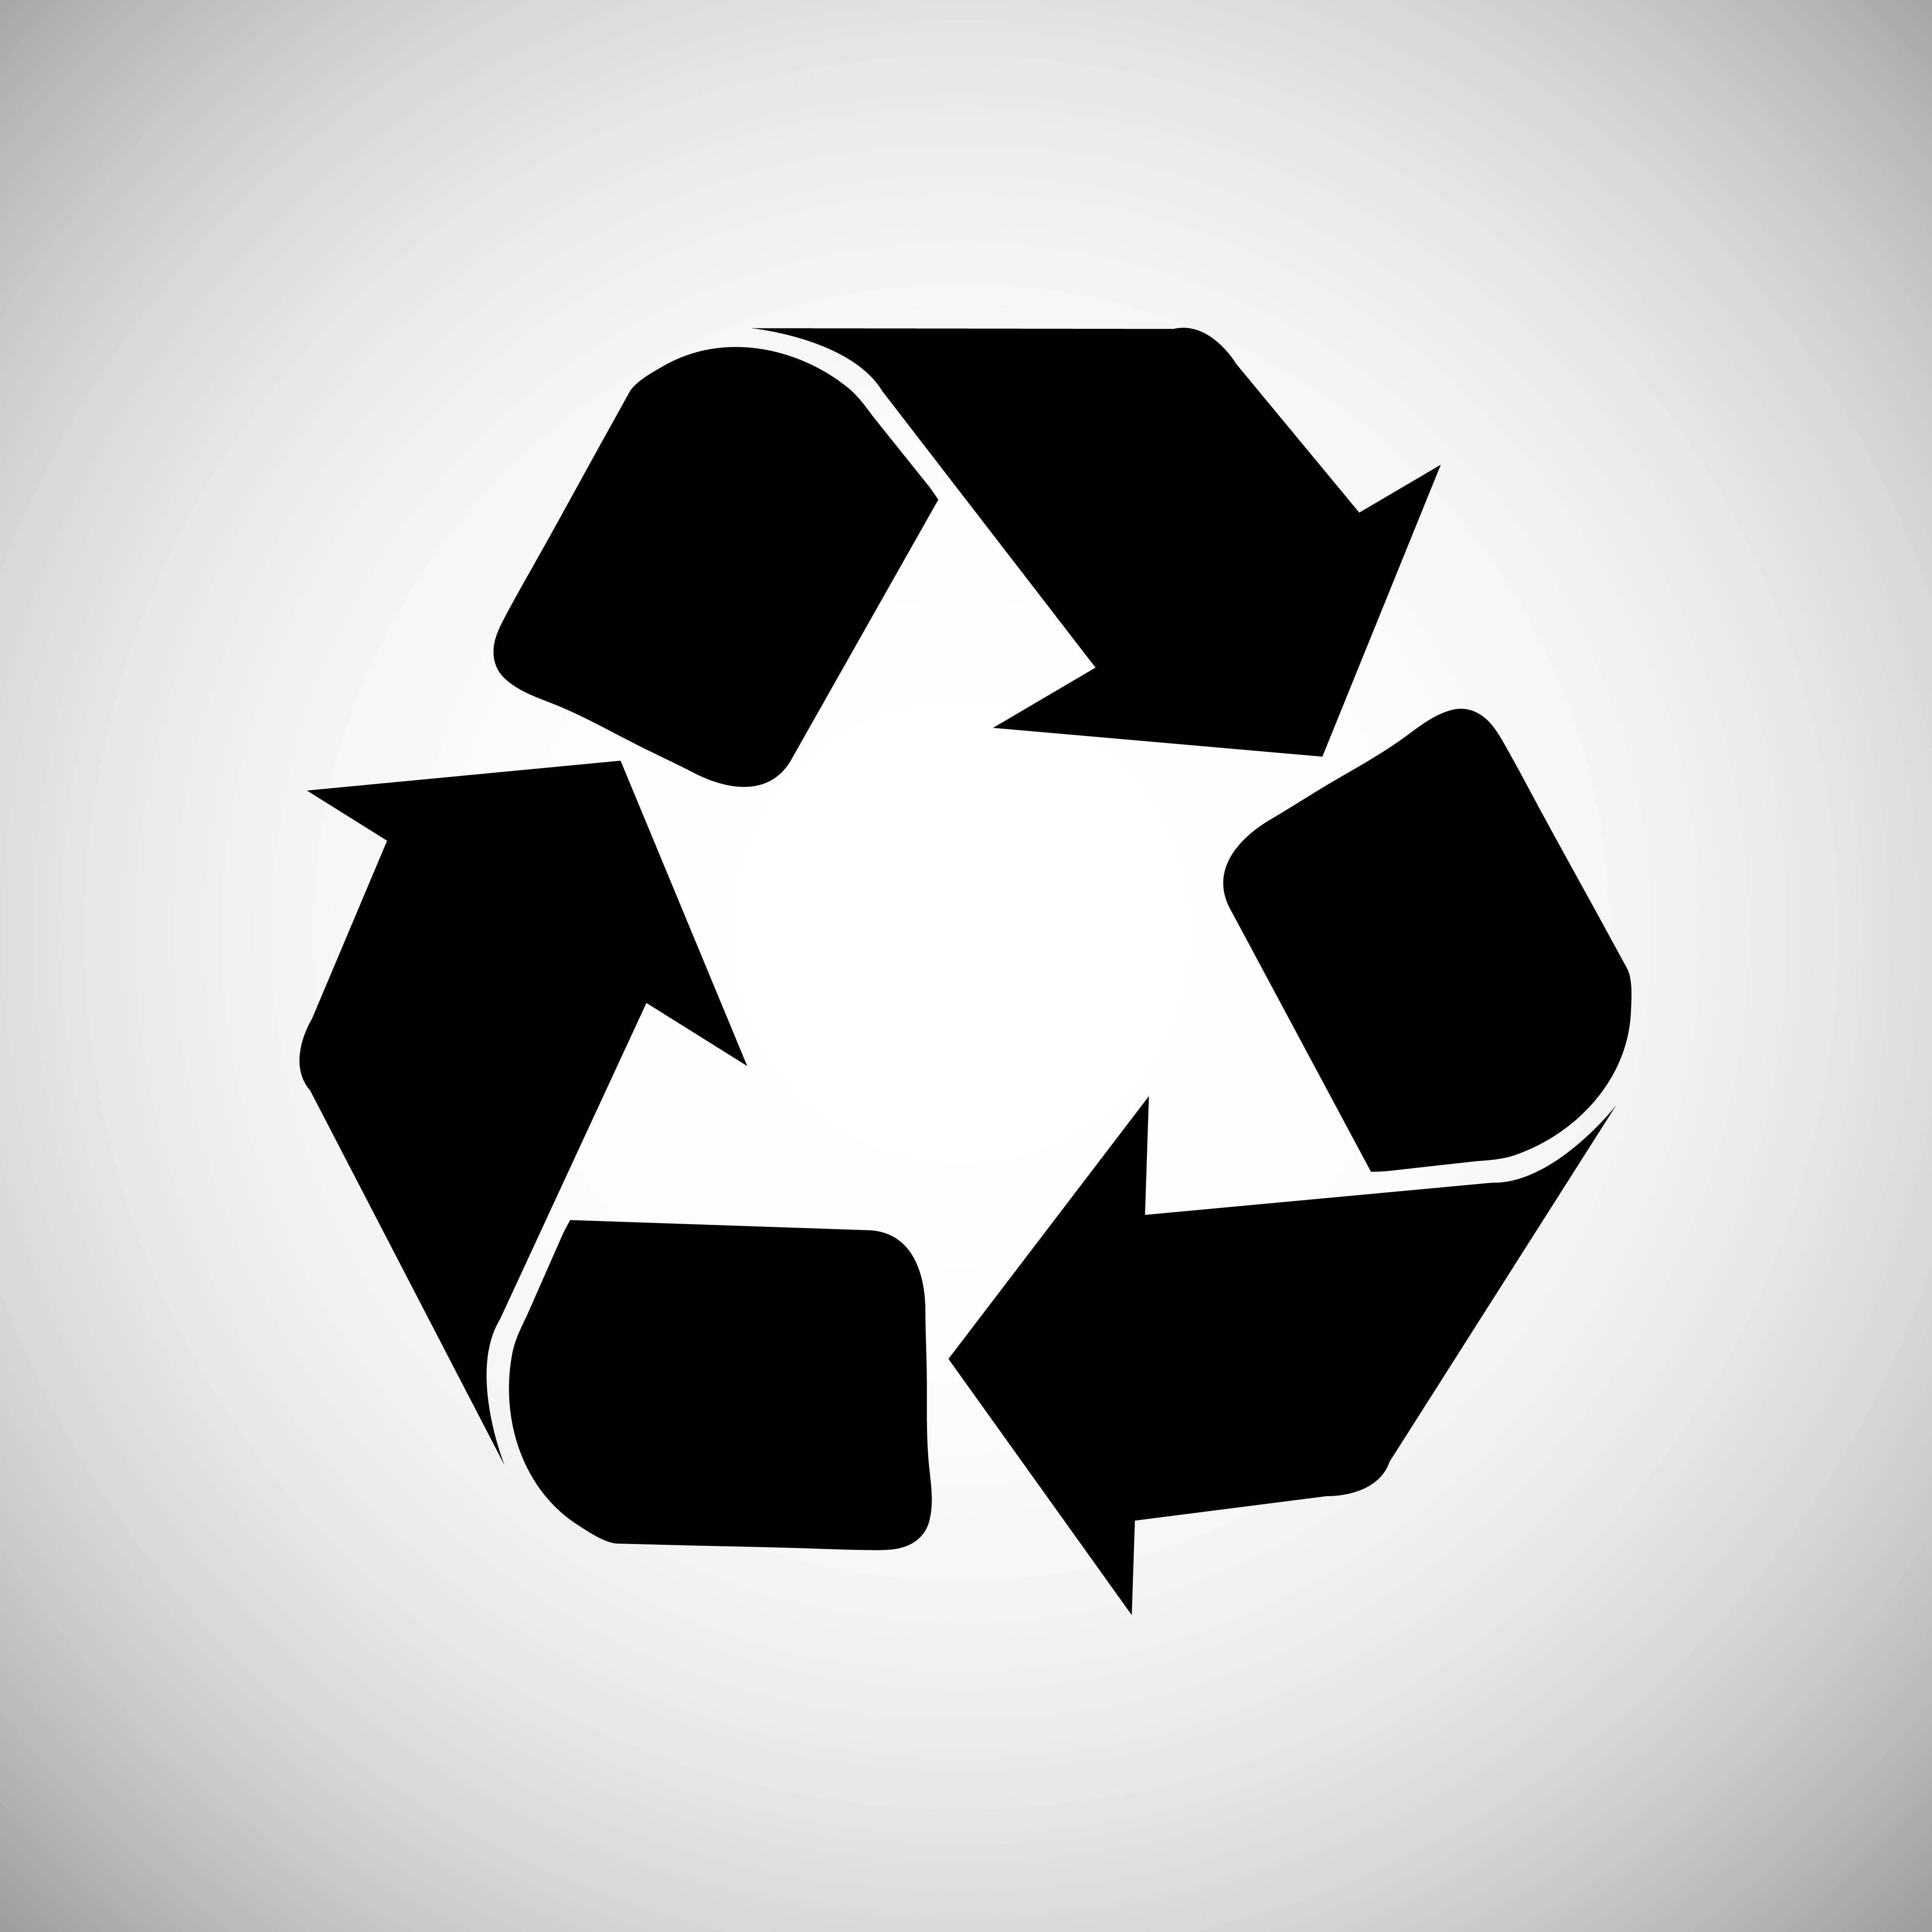 Township Announcement: Second Electronics & Styrofoam Recycling Day – Saturday, April 6